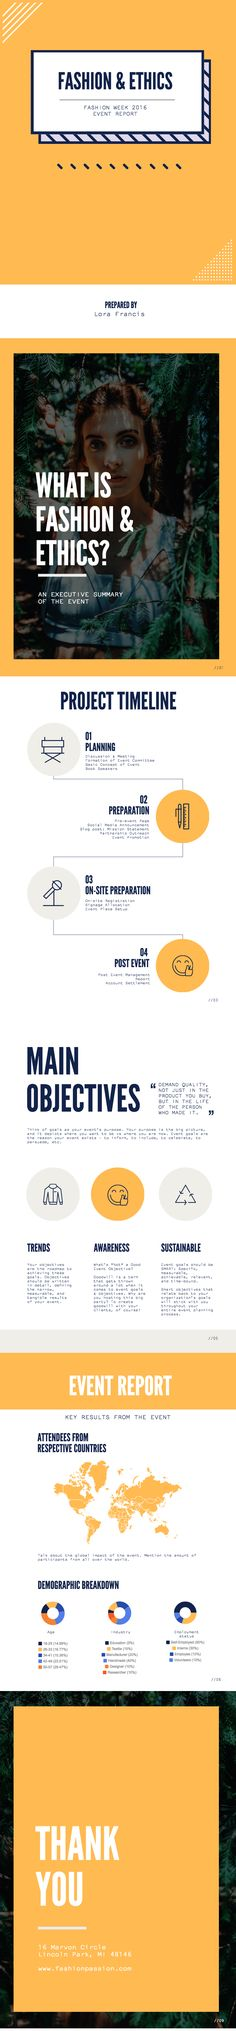 Templates Piktochart infographic Pinterest Template and - Summary Report Template